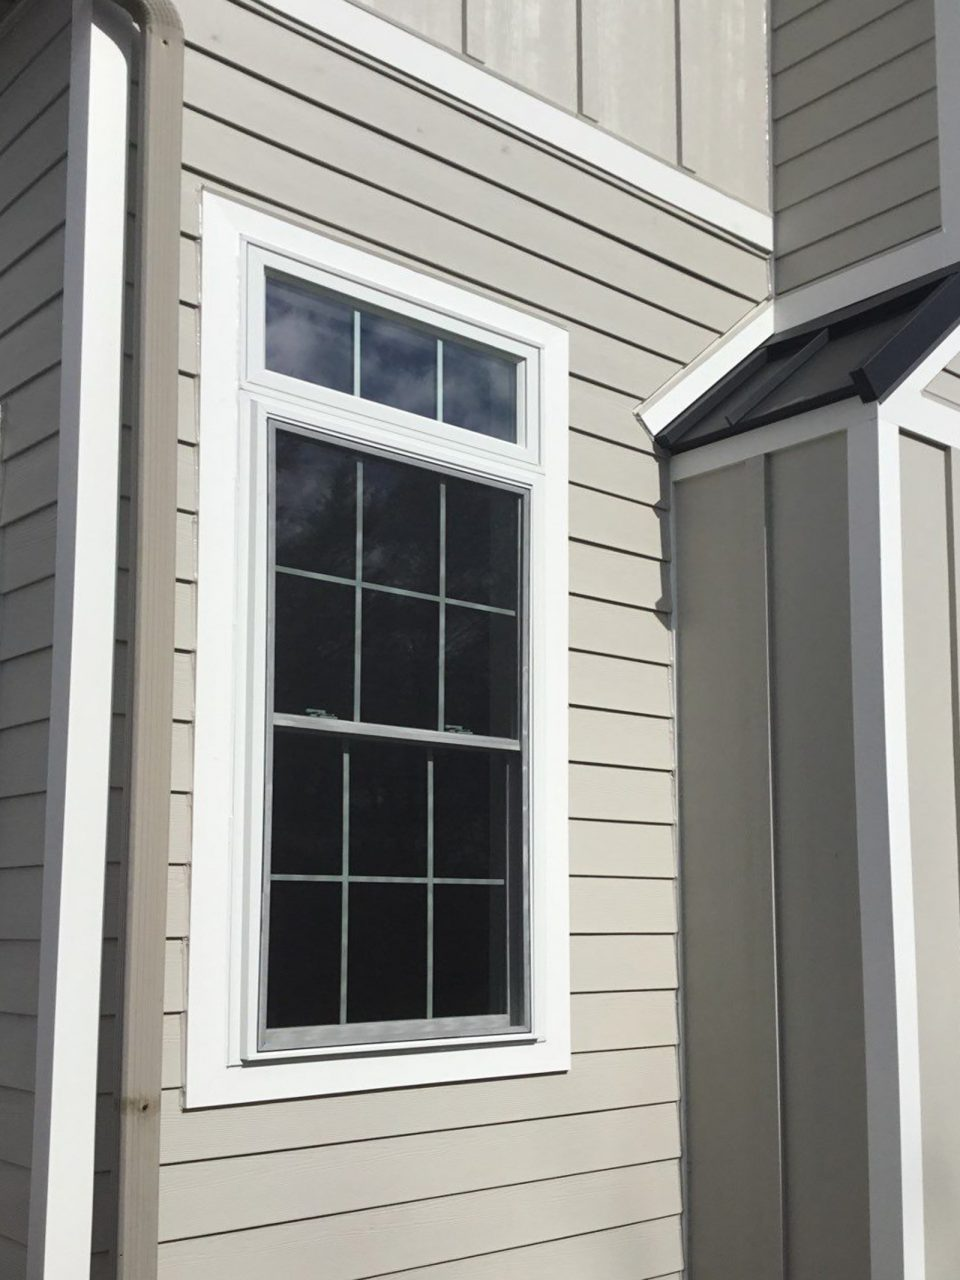 window repacements lancaster home remodeling pa pennsylvania windows doors roofing siding gutters